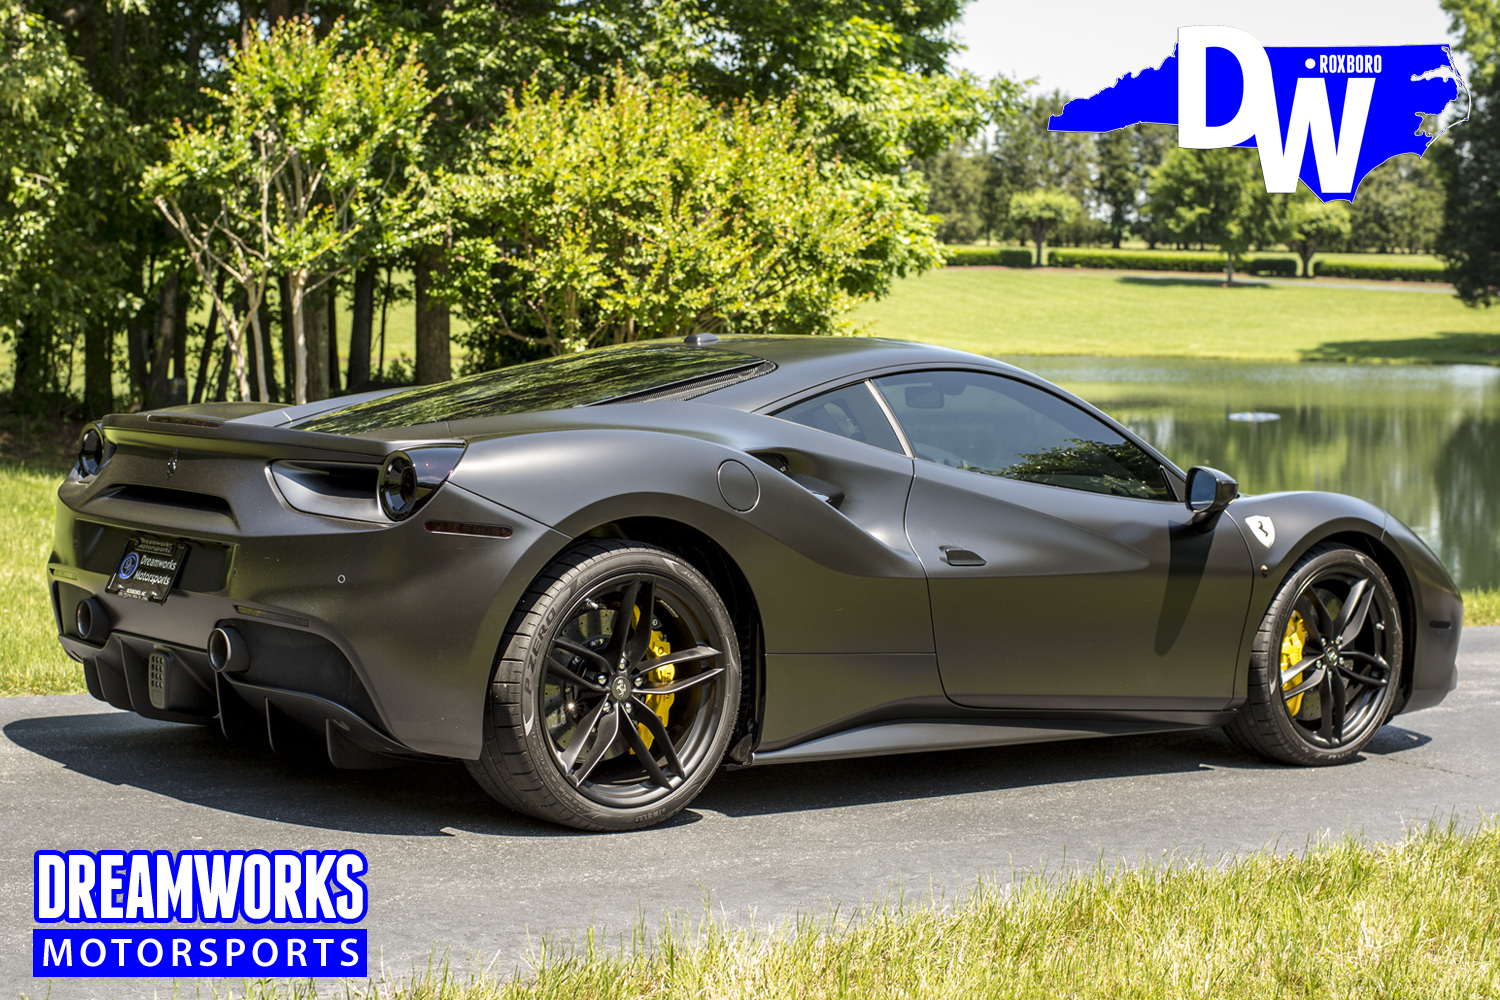 Ferrari_488_Satin_Black_Wrap_Murdered_Out_by_Dreamworks-Motorsports-5.jpg